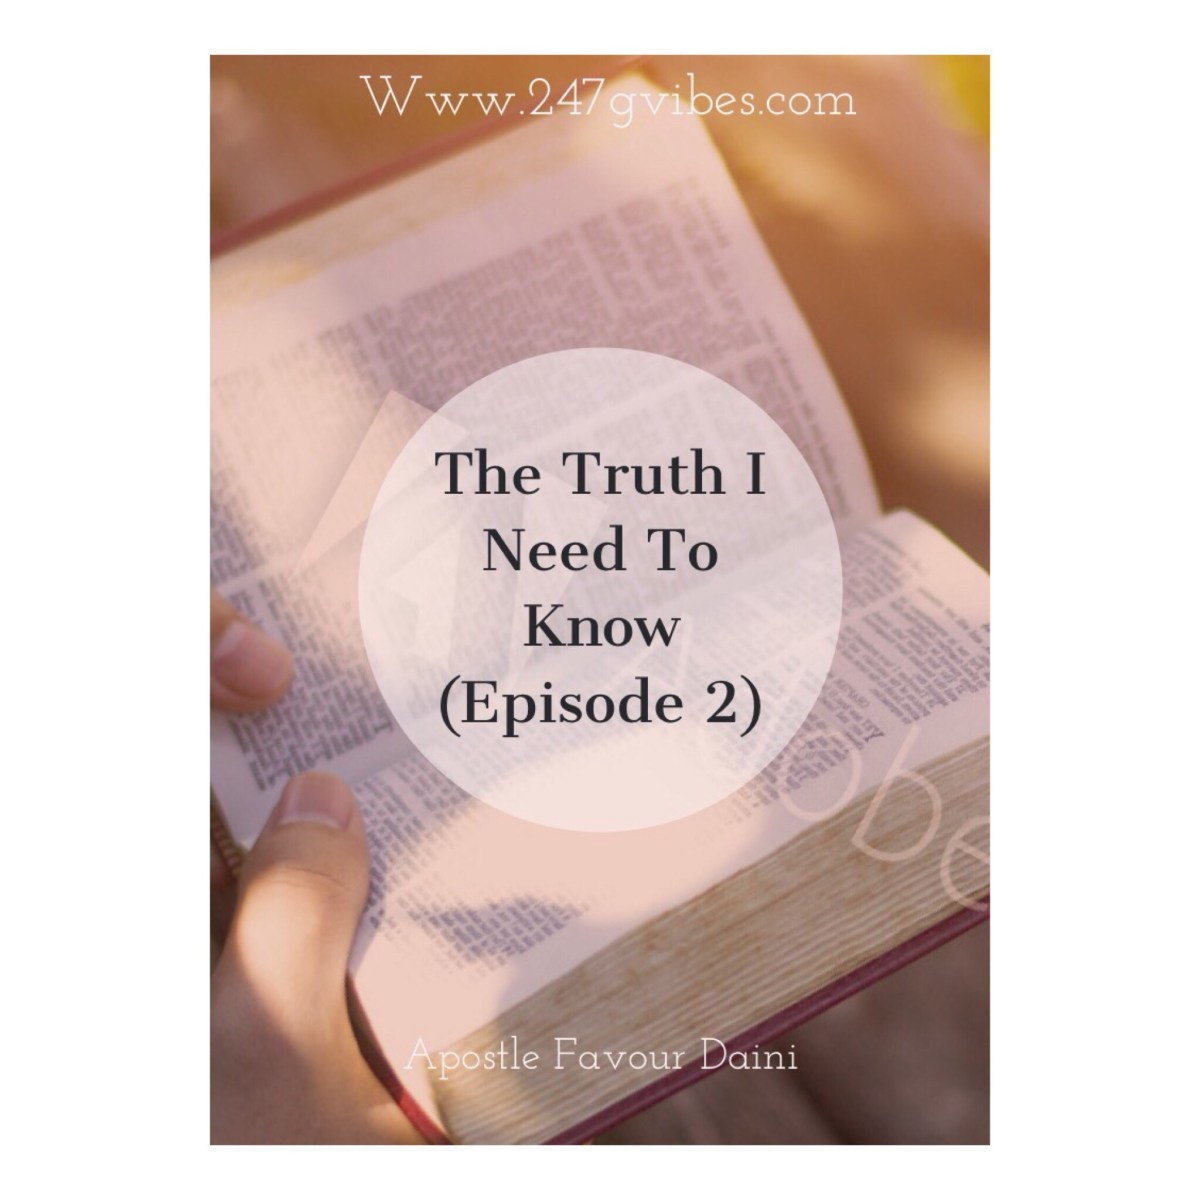 Article : The Truth I Need To Know (ll) - Apostle Favour Daini